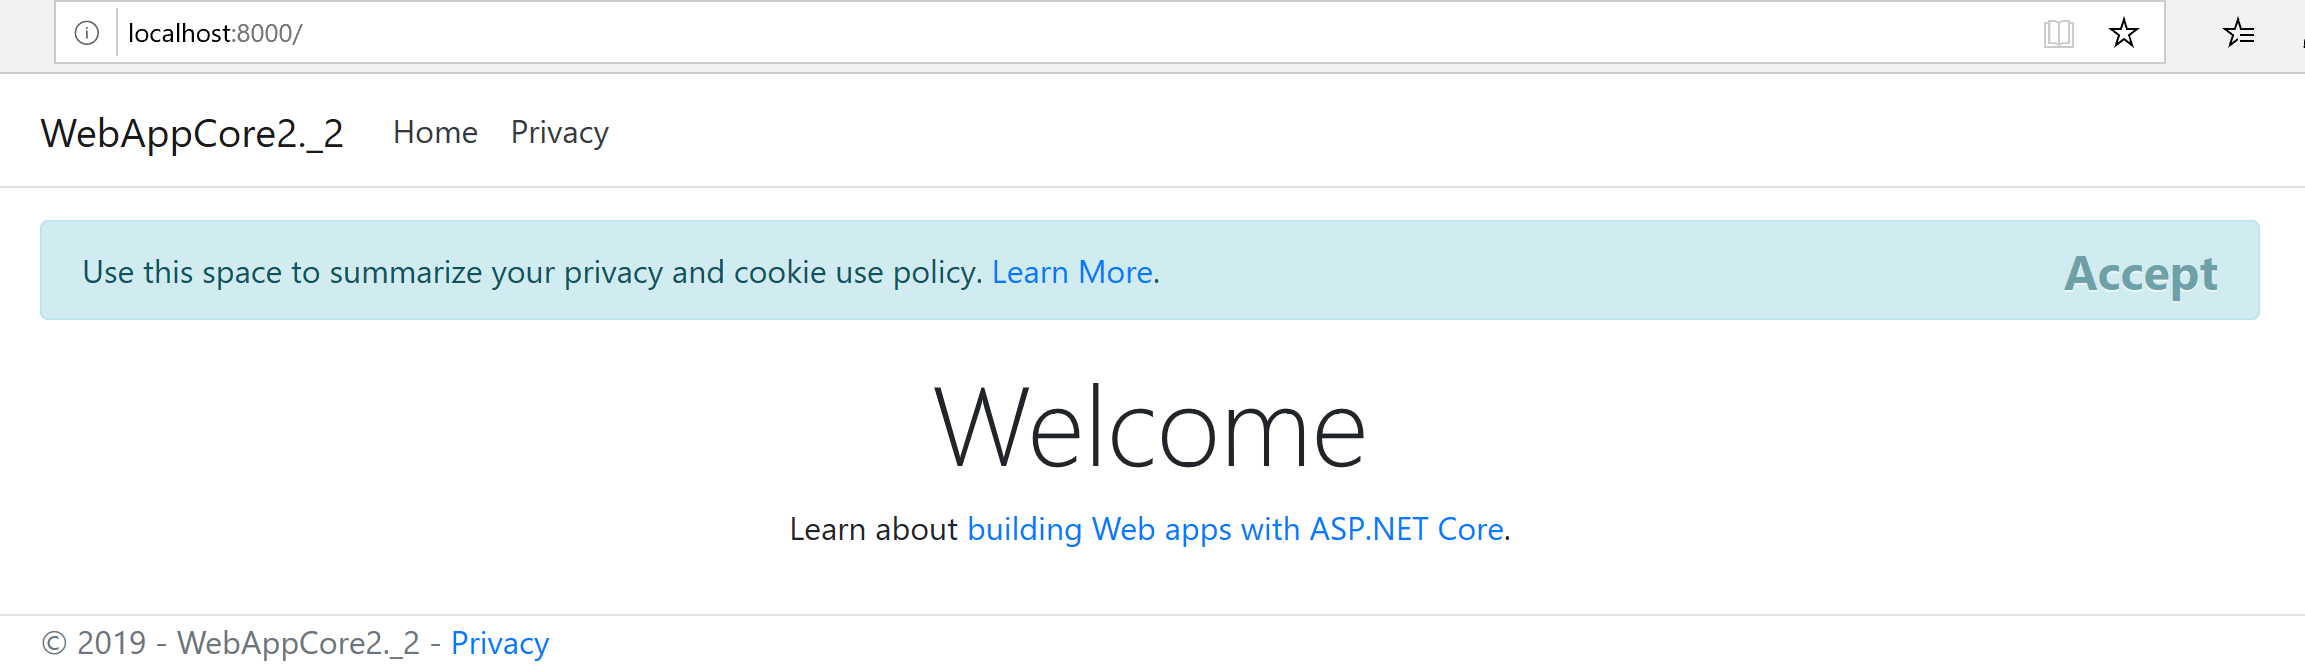 browse-asp-nnet-core-app-from-local-host